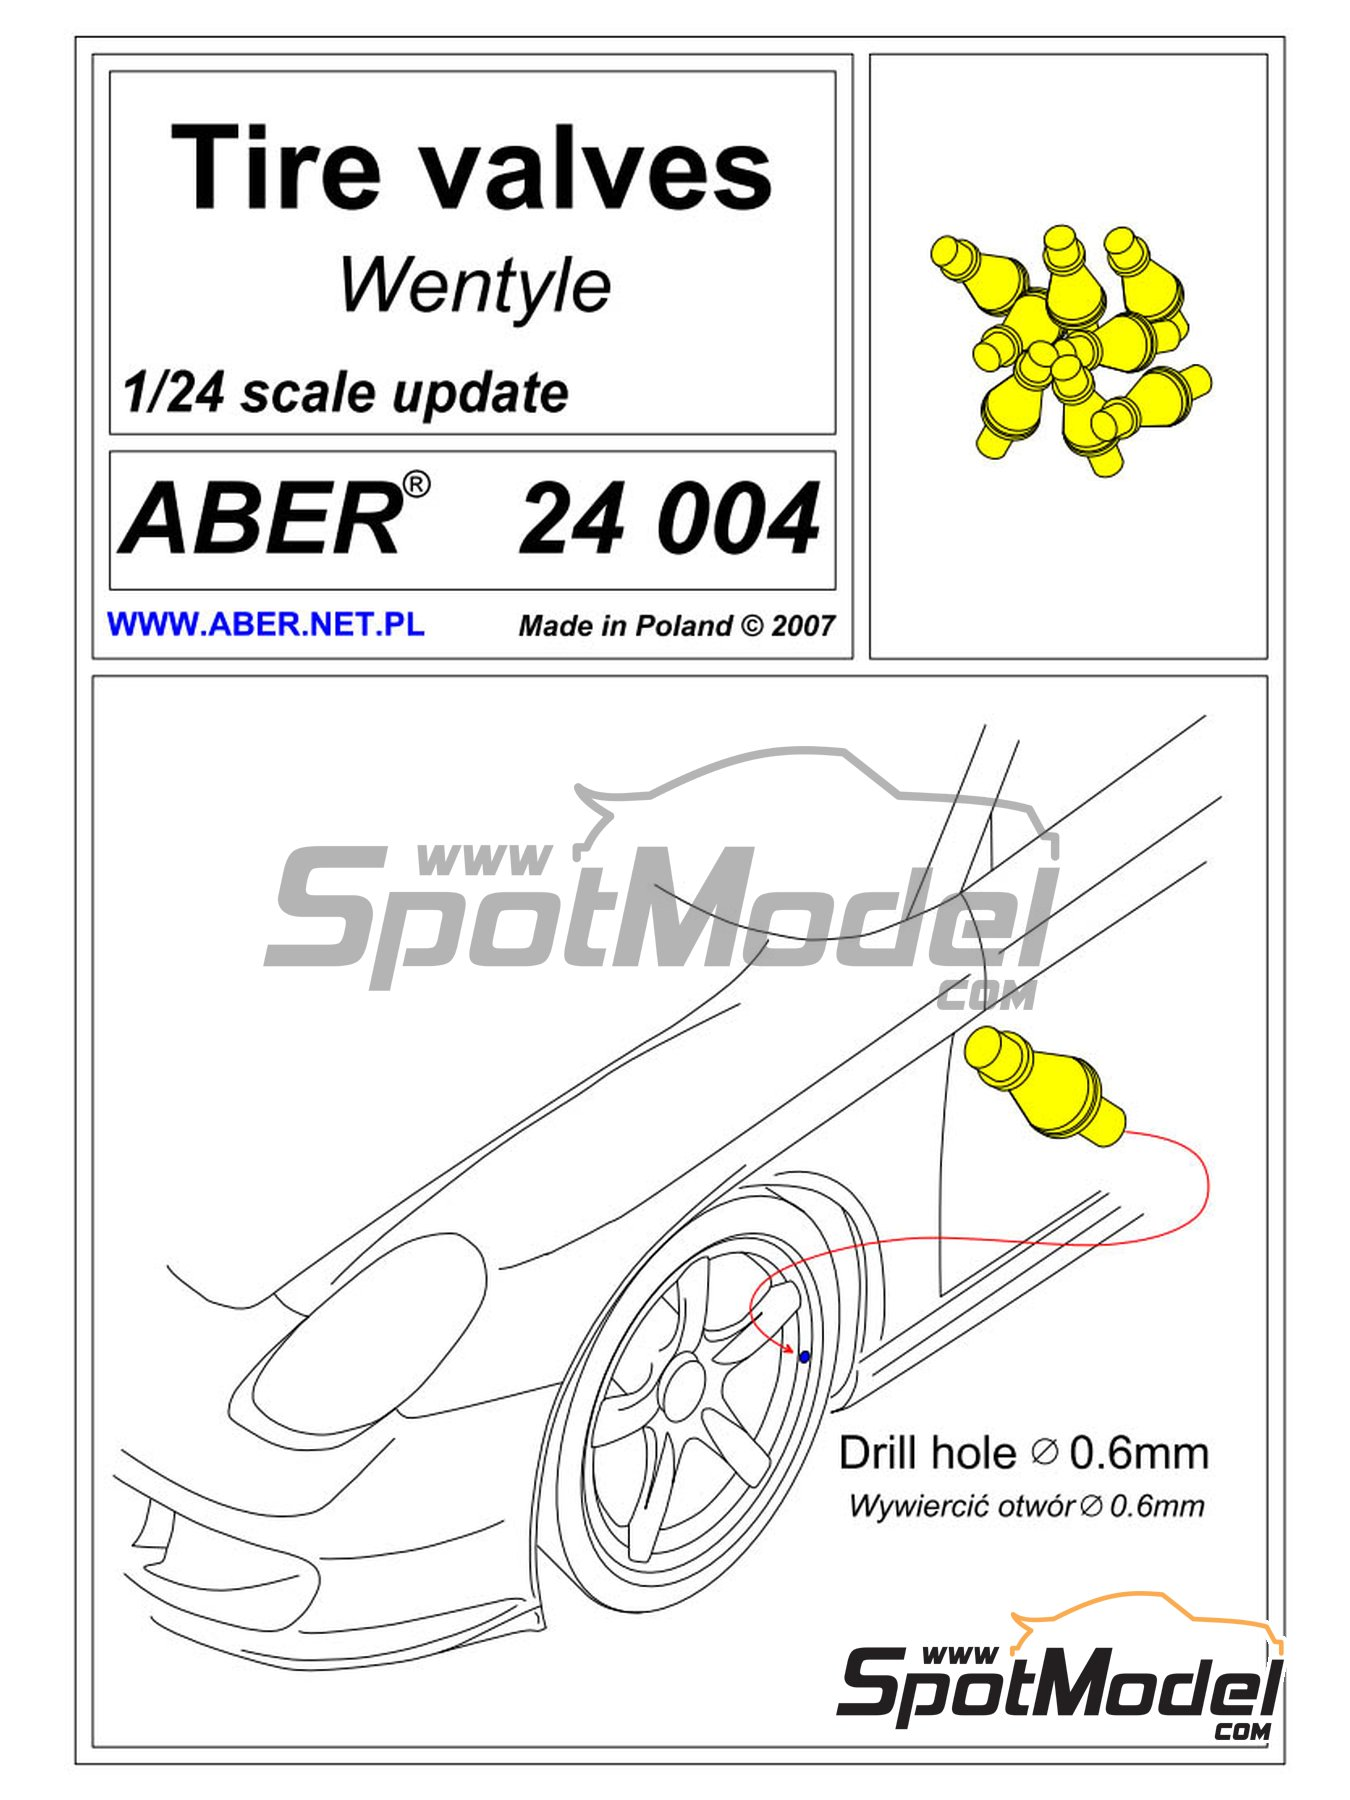 Air valves | Air valve in 1/24 scale manufactured by Aber (ref.24.004) image